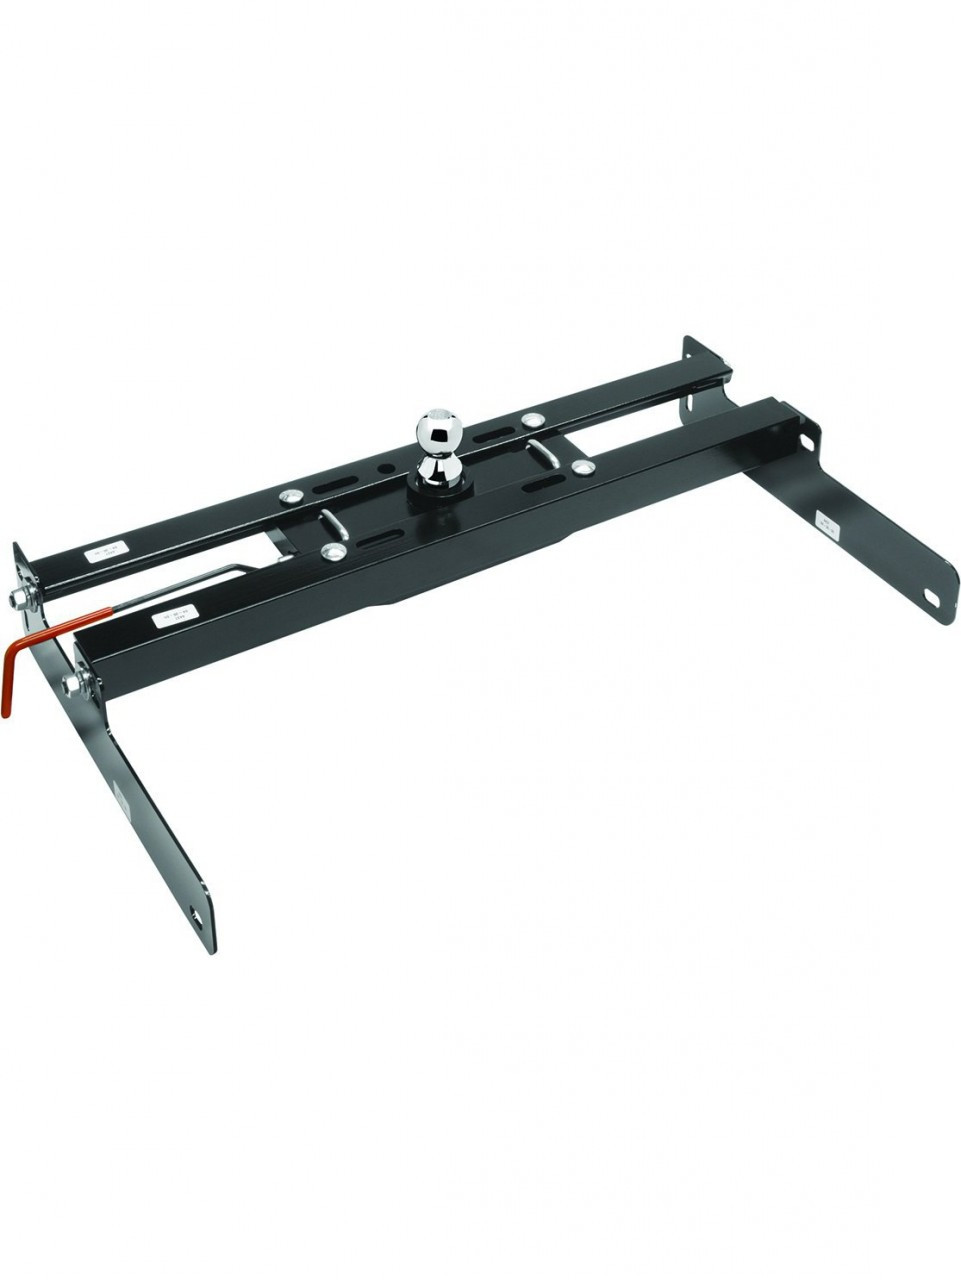 9475-37 --- BULLDOG 30K Under-Bed Gooseneck, 2004-2014 Ford